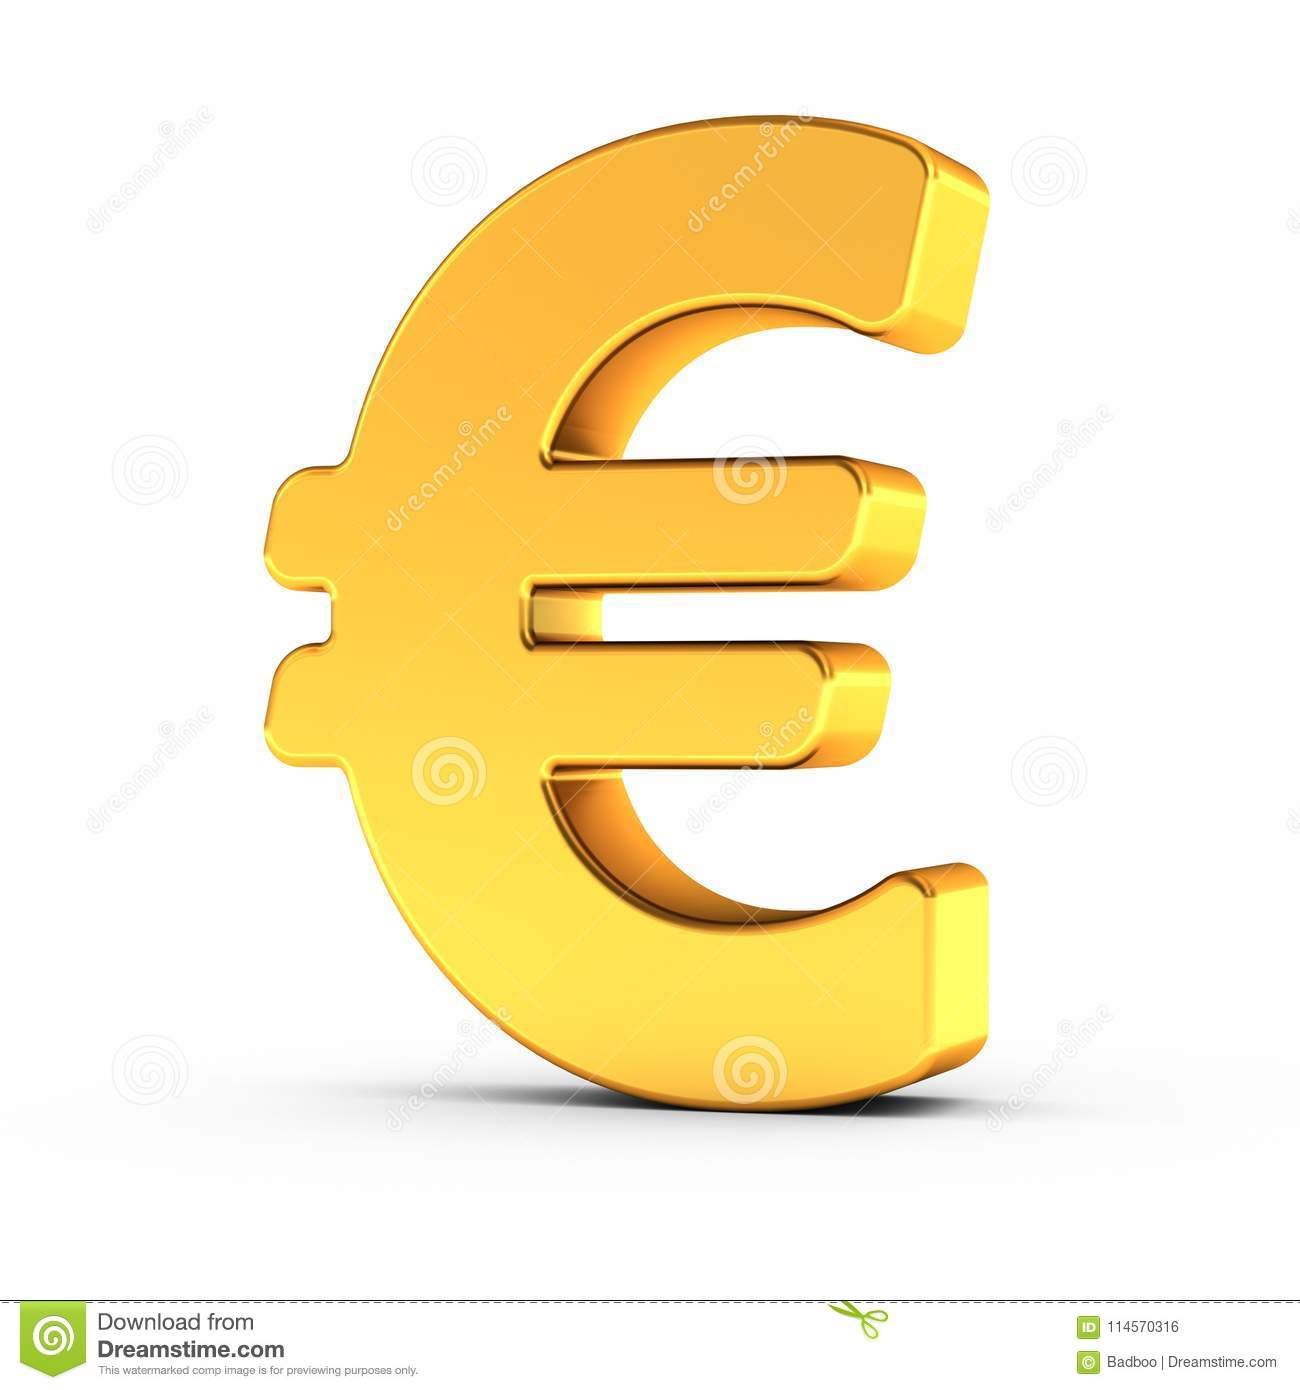 The Euro Symbol As A Polished Golden Object With Clipping Path Stock